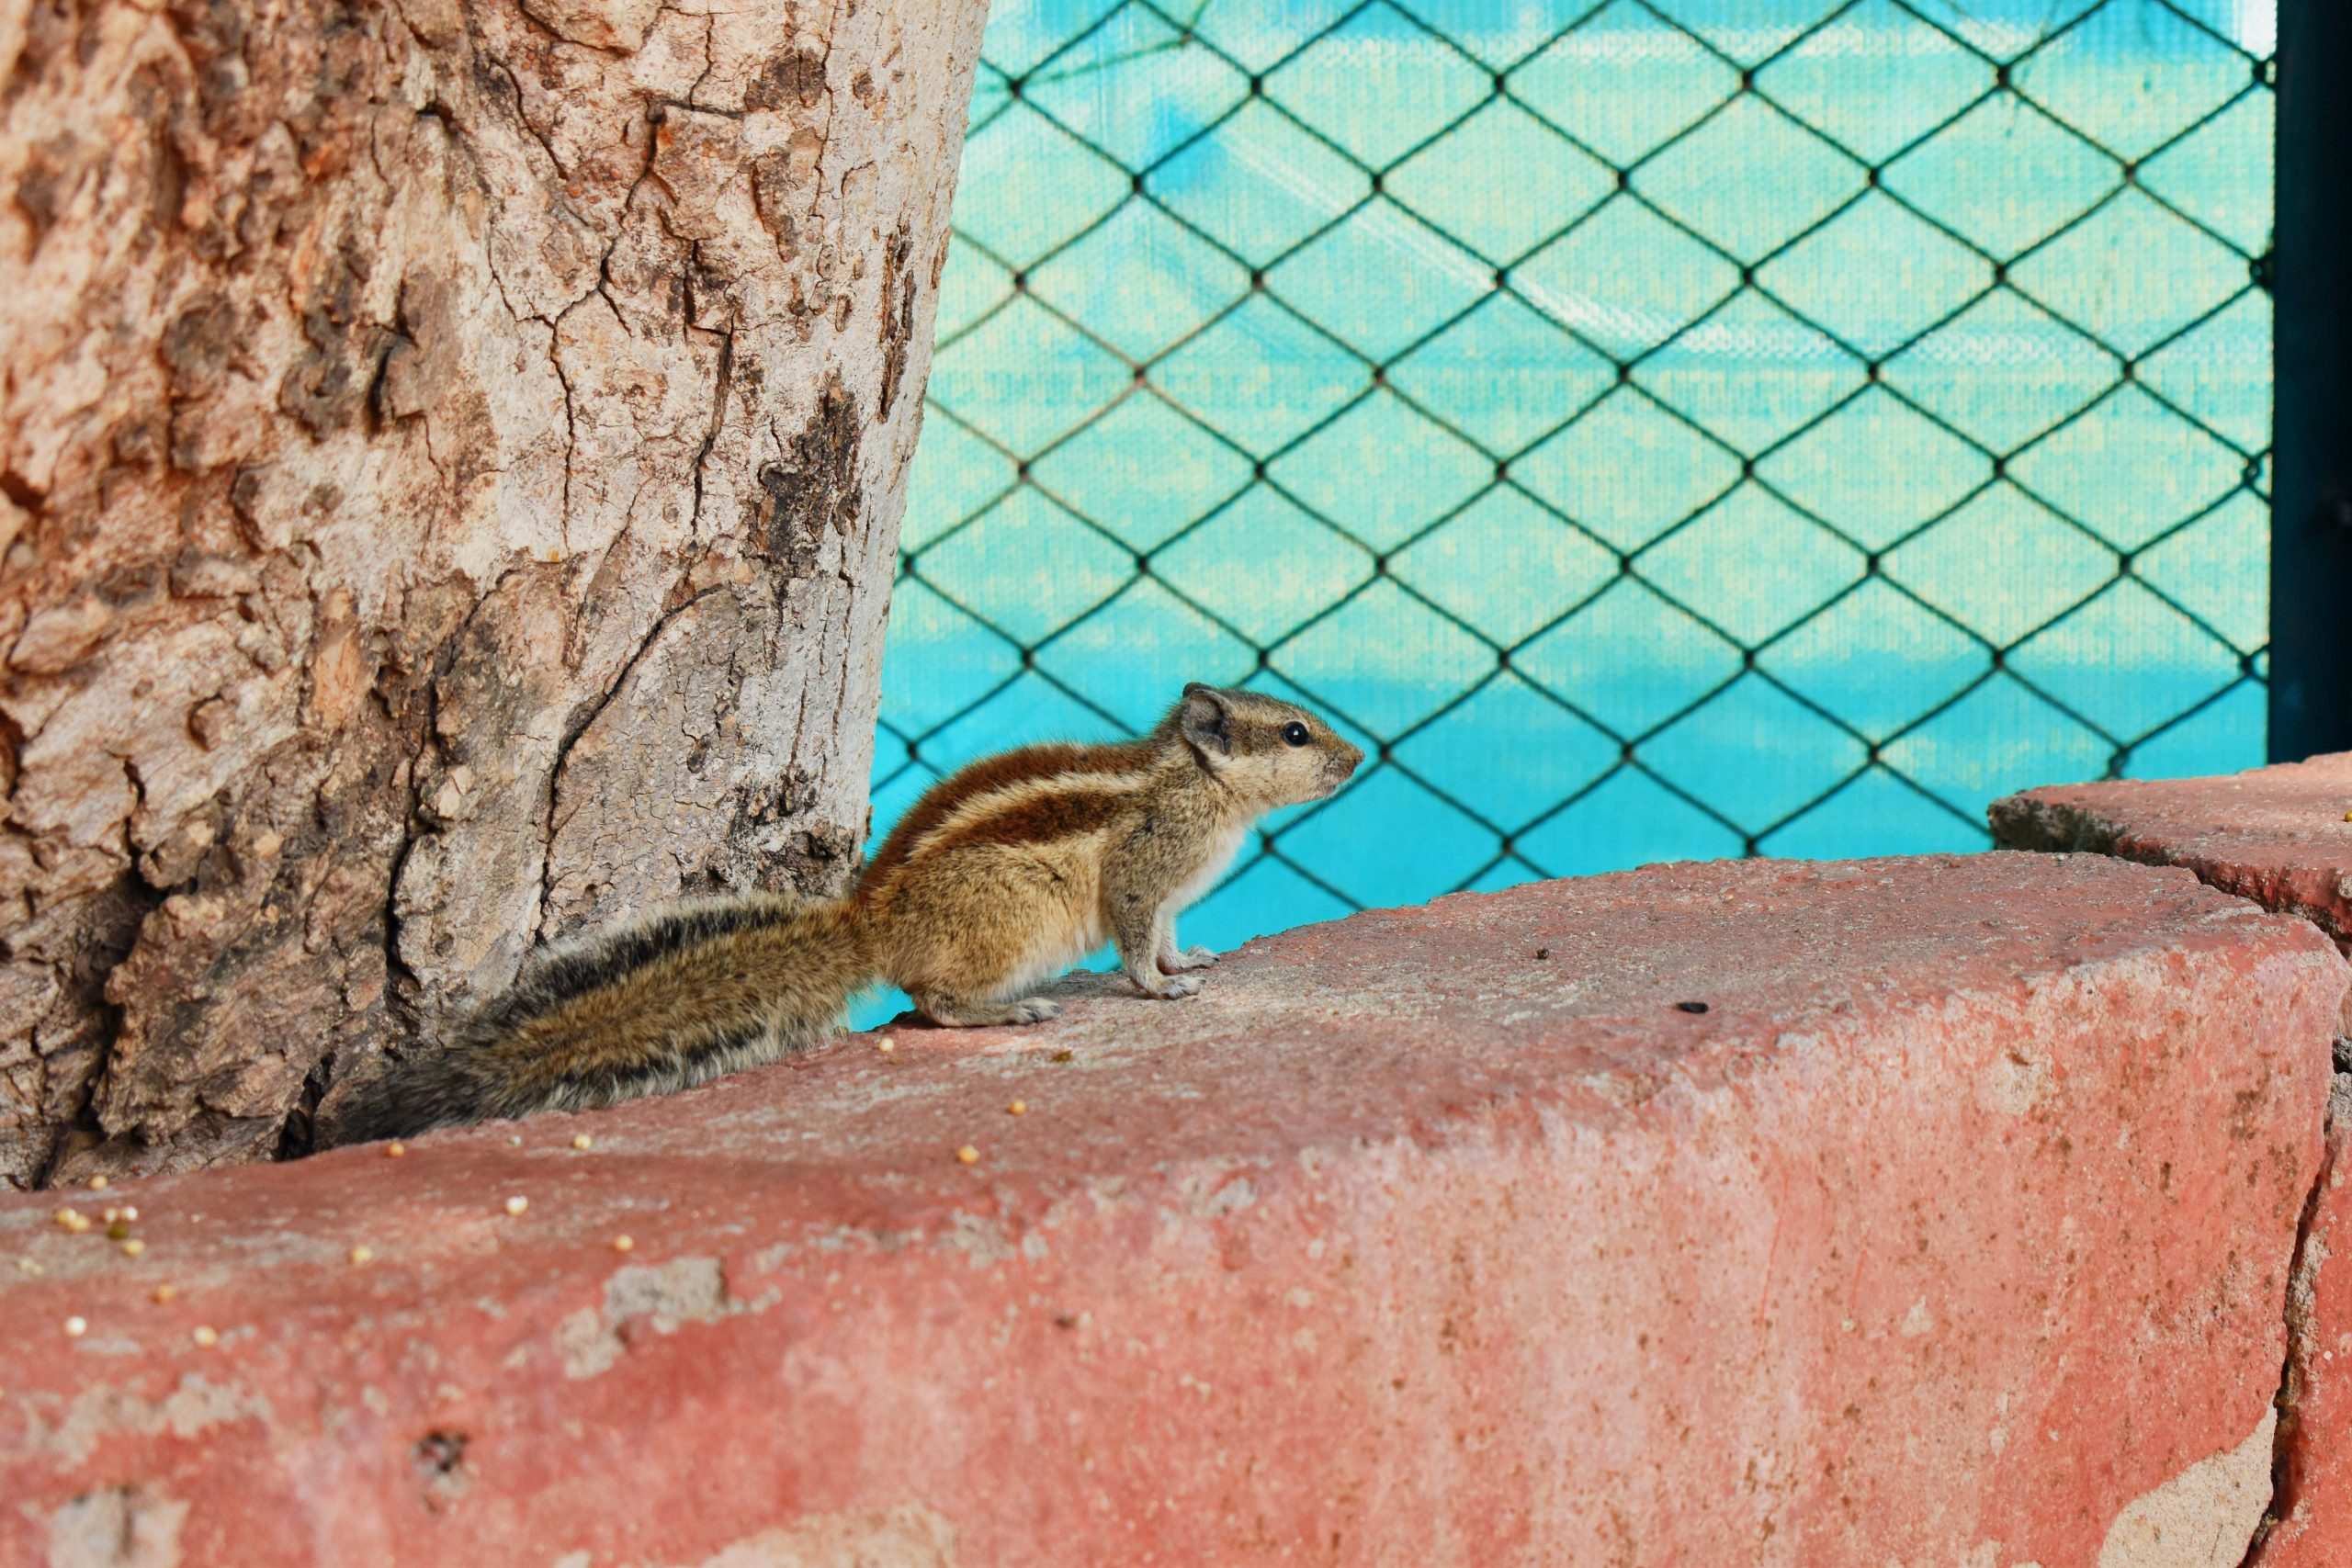 A squirrel on a wall